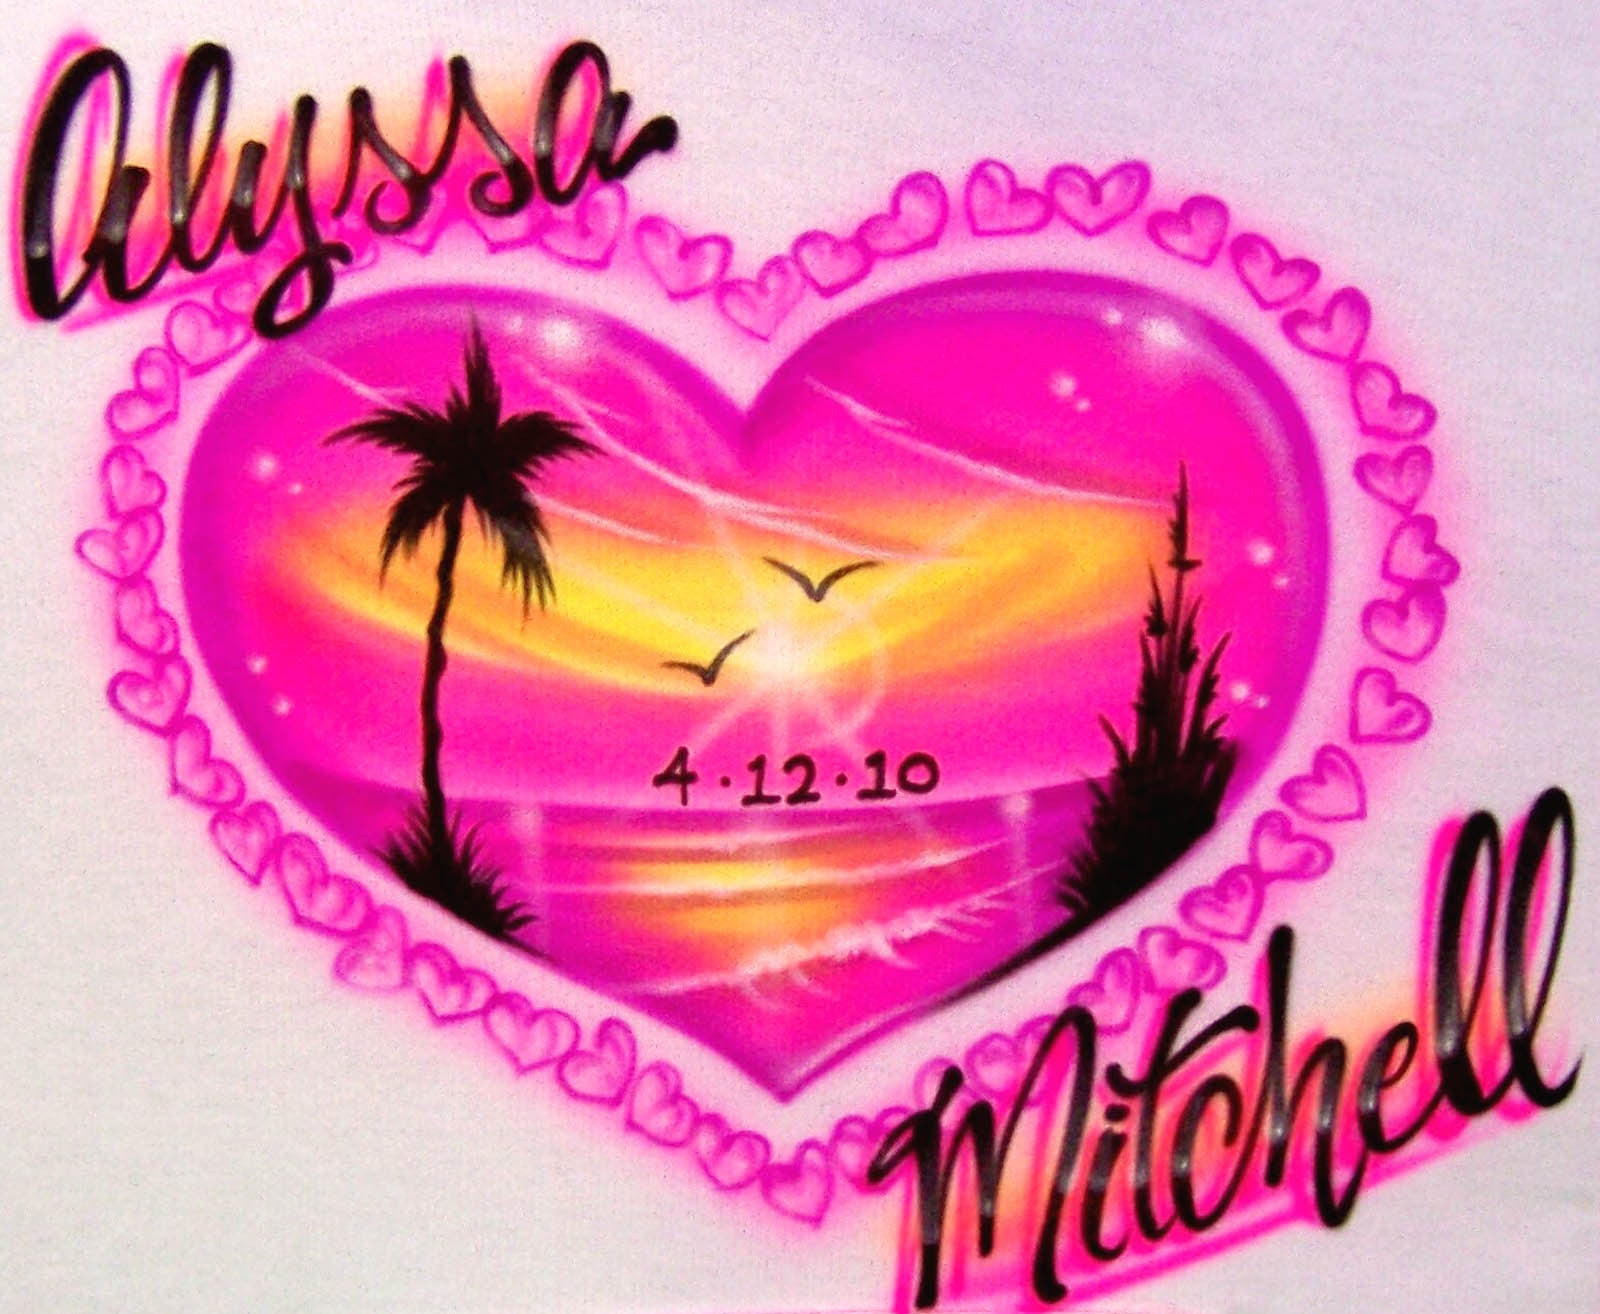 Neon heart shaped beach scene & double name shirt